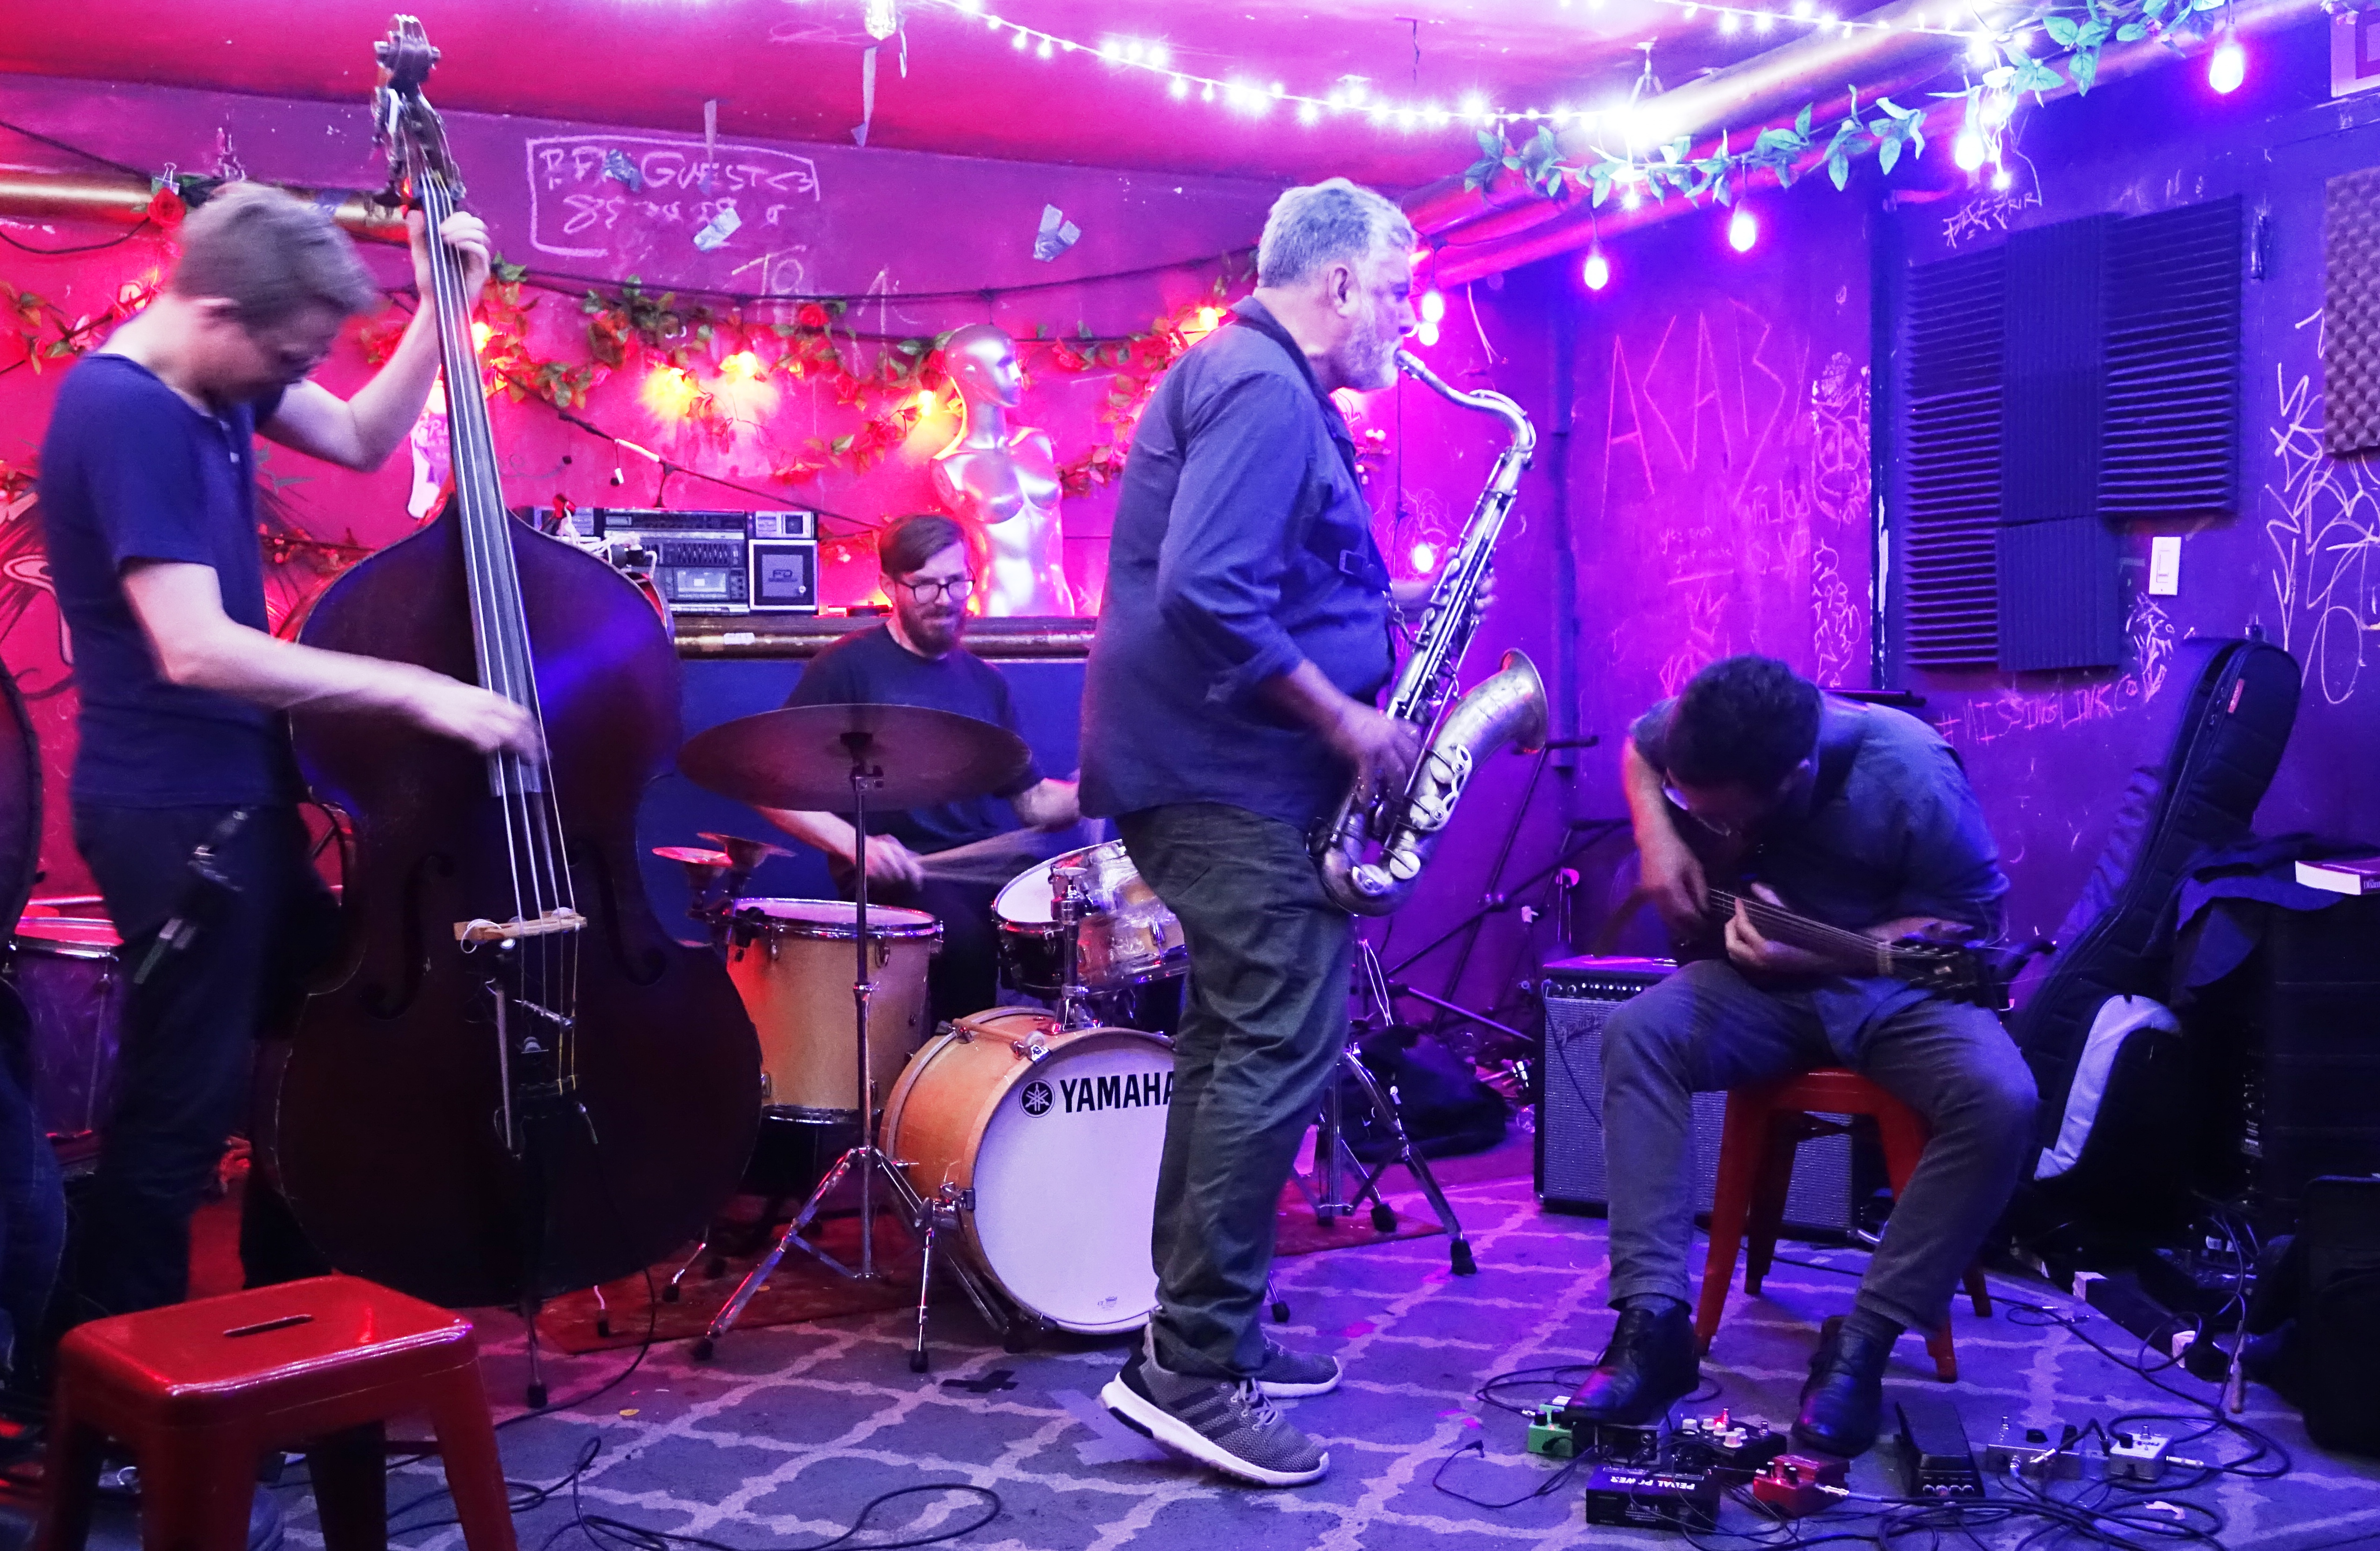 Eivind Opsvik, Tony Malaby, Colin Hinton and Todd Neufeld at the Bushwick Public House, Brooklyn in June 2019